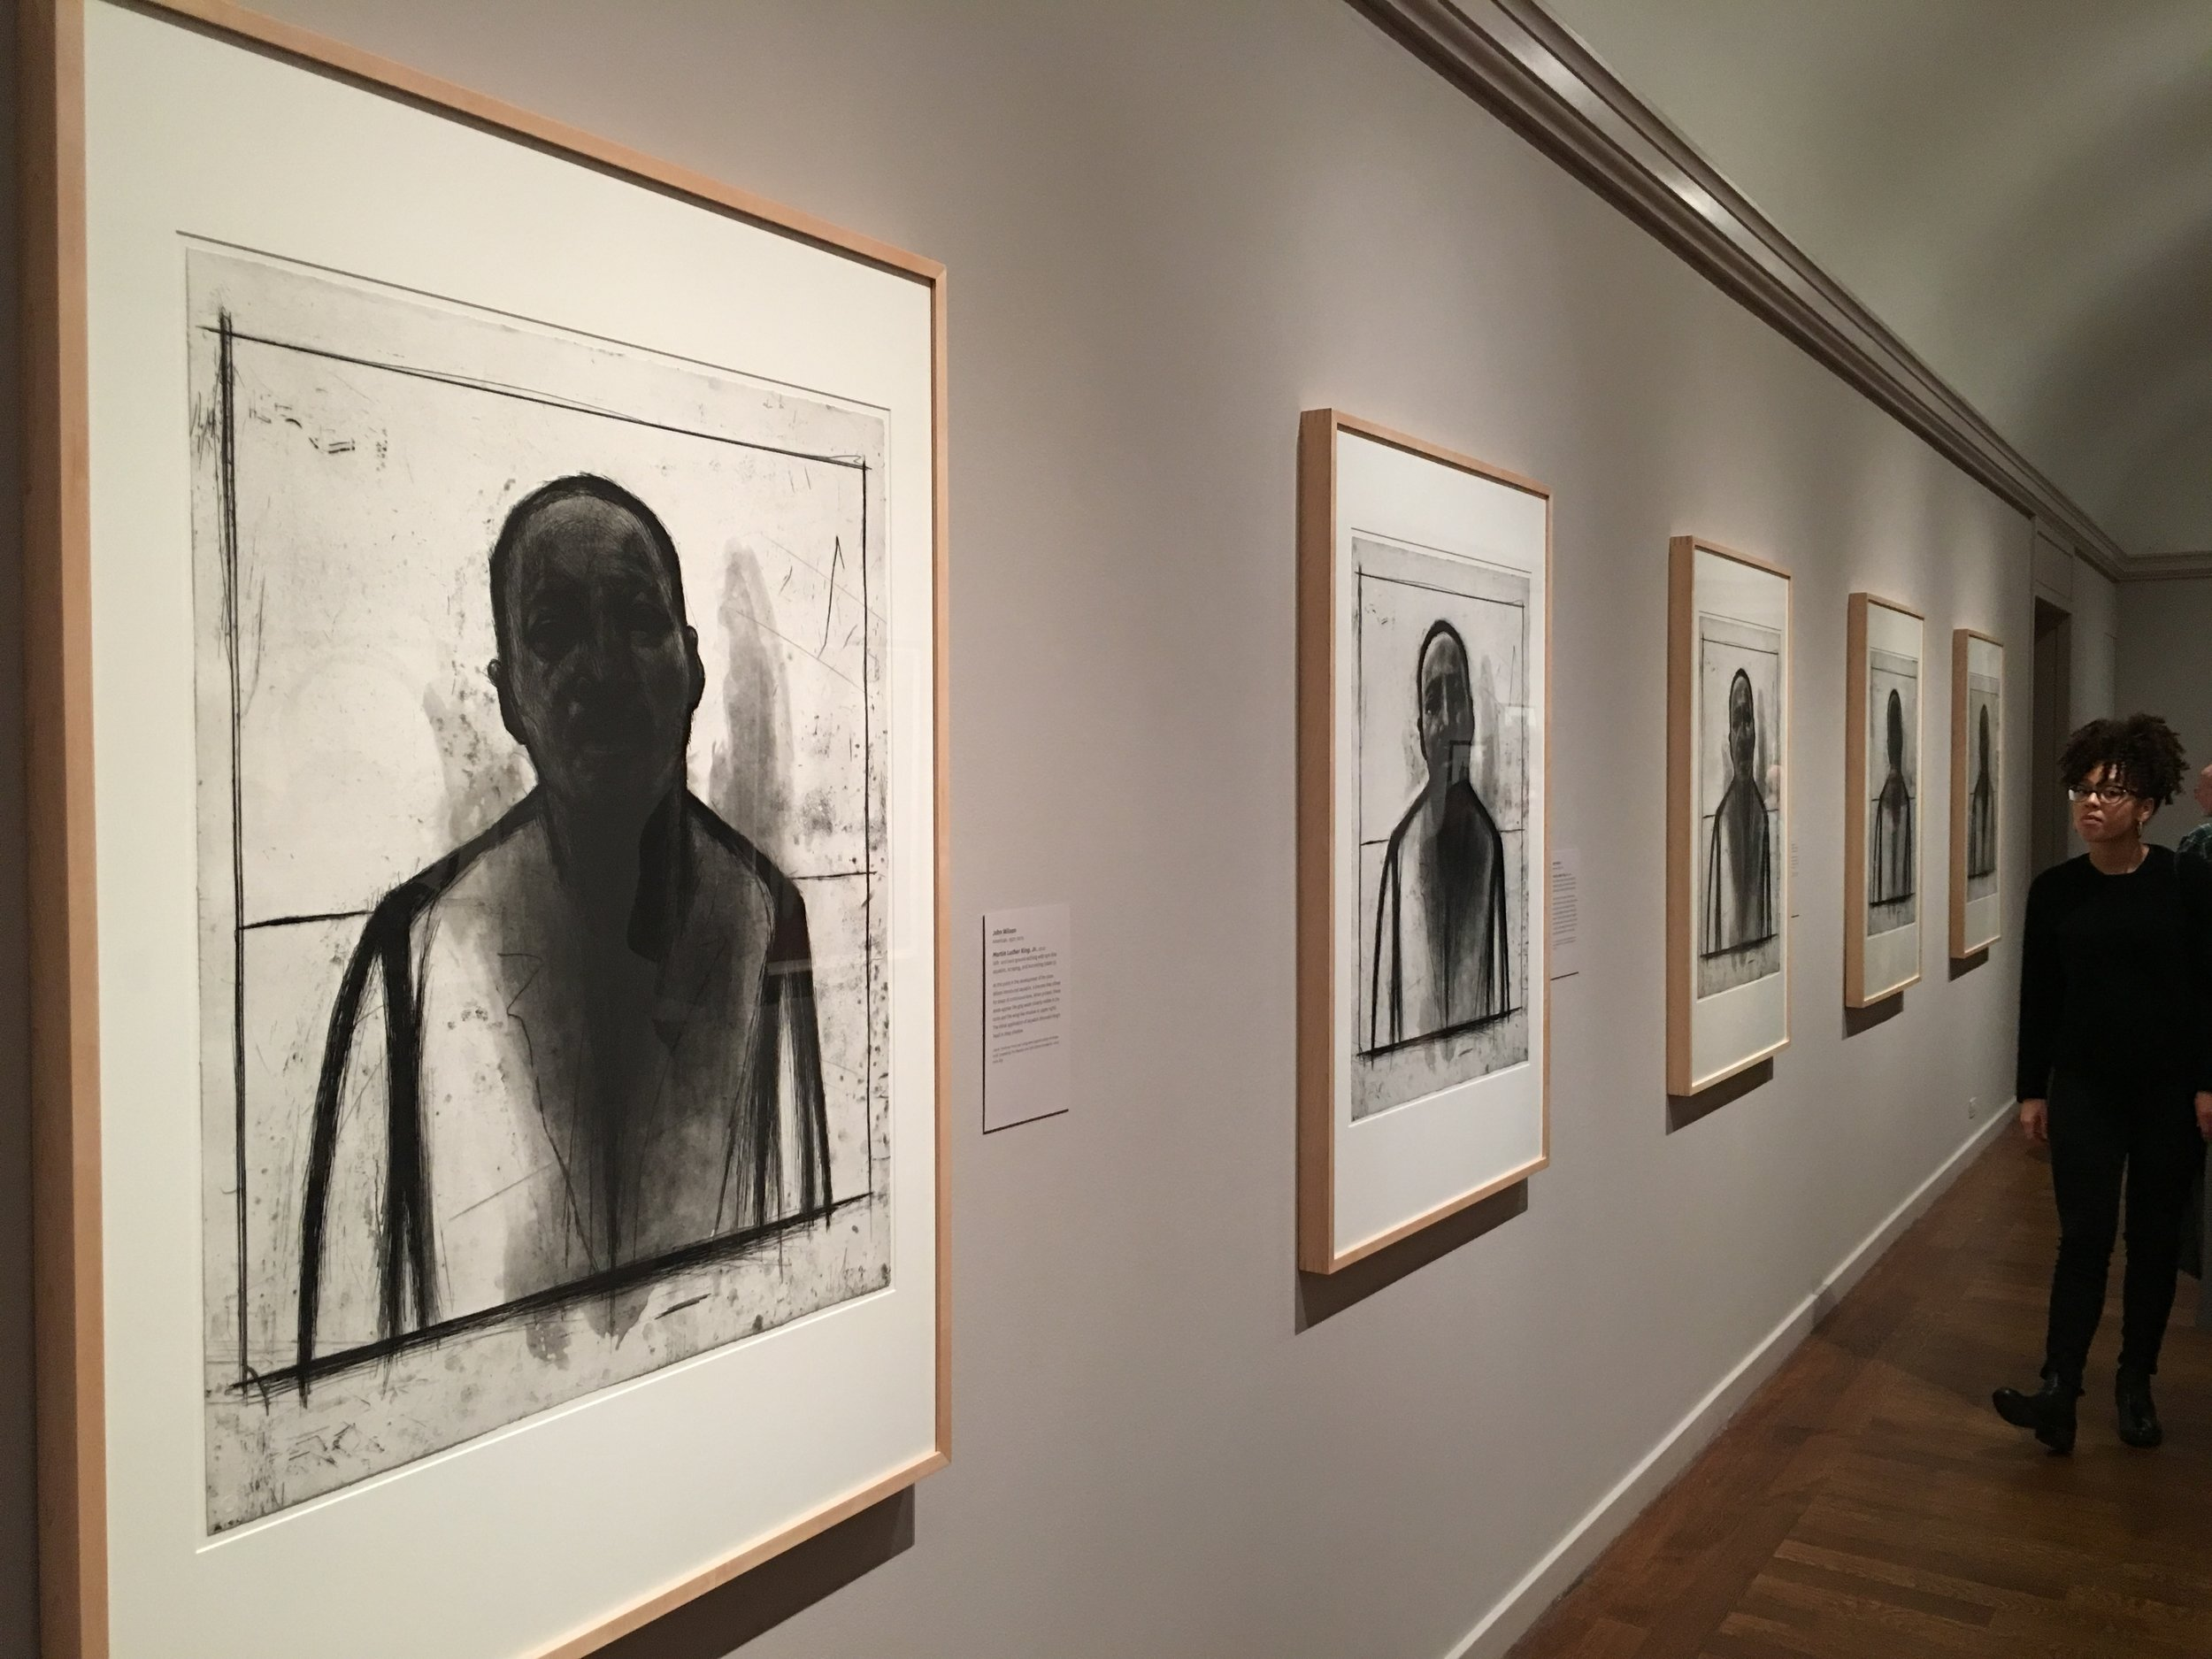 John wilson exhibit was a must see. on display were his renderings and sketches for the MLK jr. bust he created, which is currently on display in the rotunda at the U.S. capitol building.